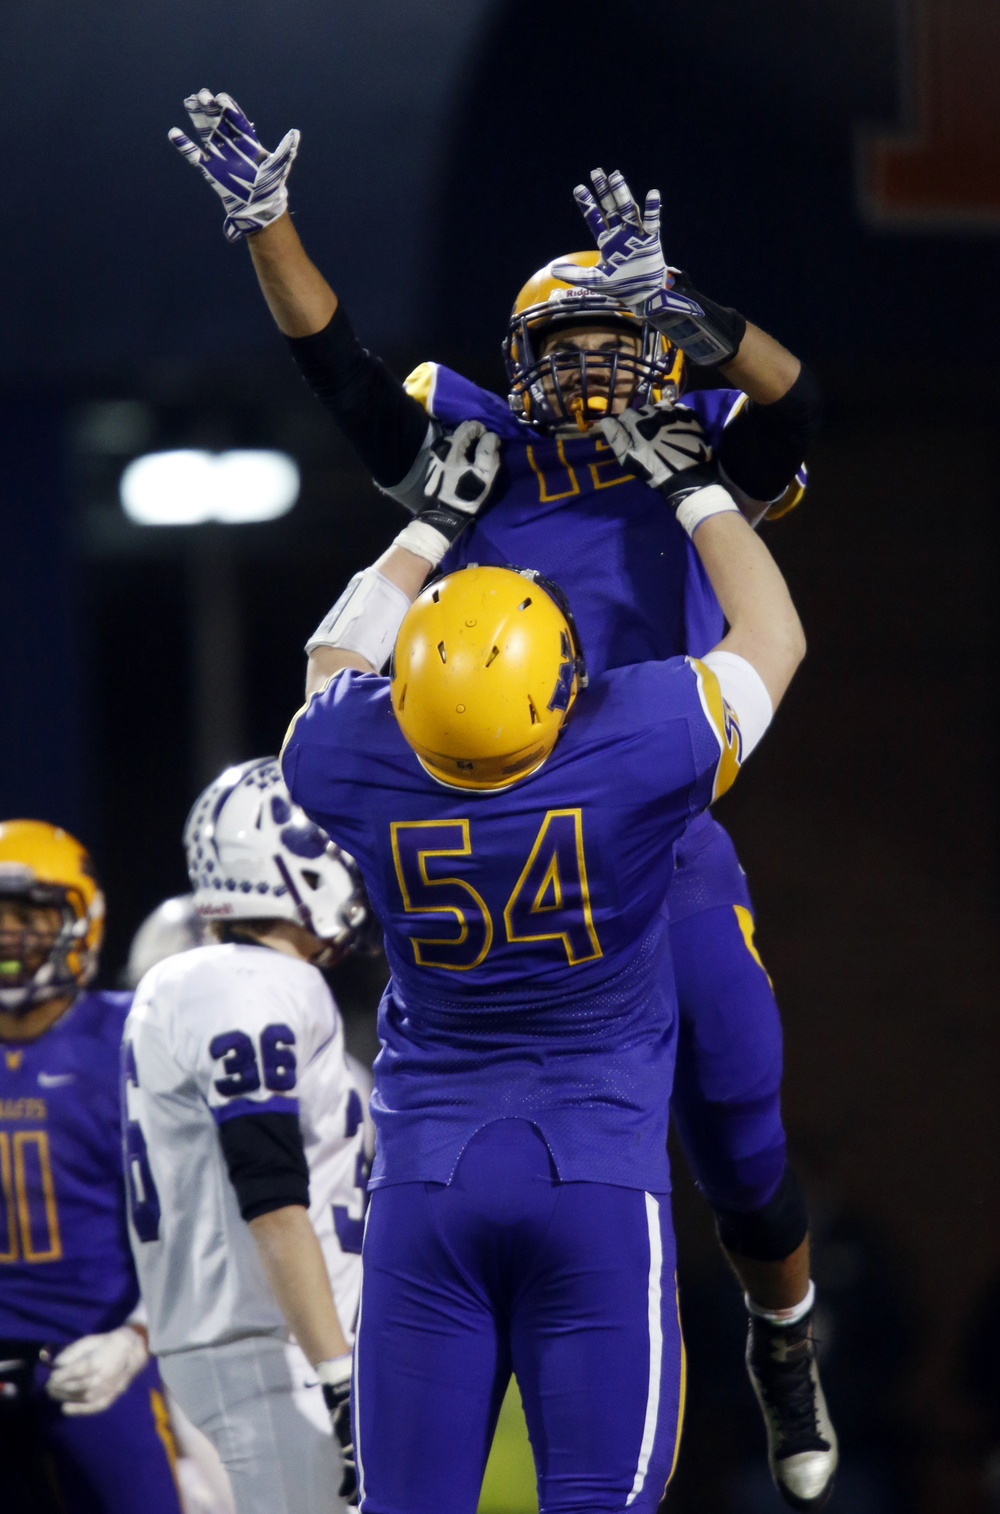 Williamsville's Mitch Whitley hoists Jace Franklin in the air after his long touch down run against Wilmington during the Class 3A football championship game at Memorial Stadium Friday, Nov. 28, 2014. Ted Schurter/The State Journal-Register